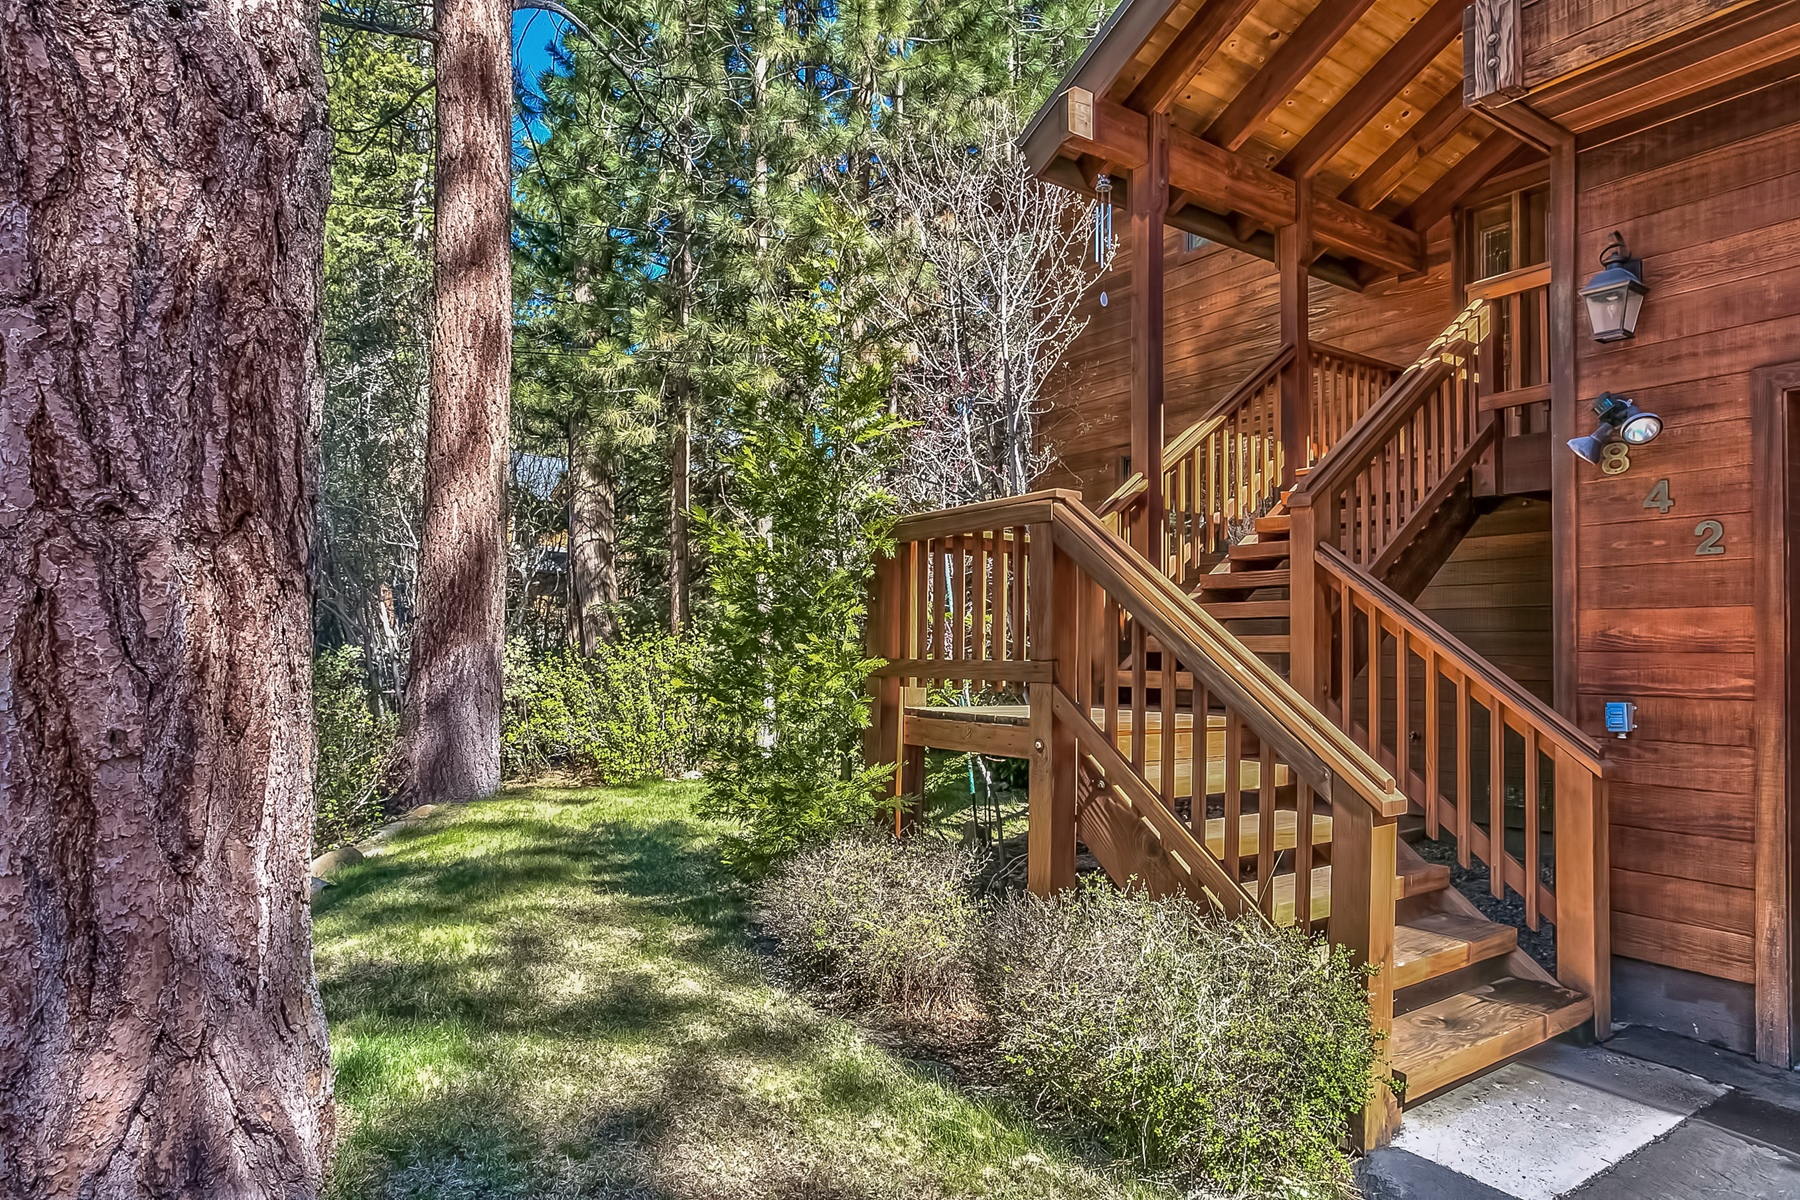 Additional photo for property listing at 842 Ophir Peak Road  Incline Village, Nevada 89451 United States